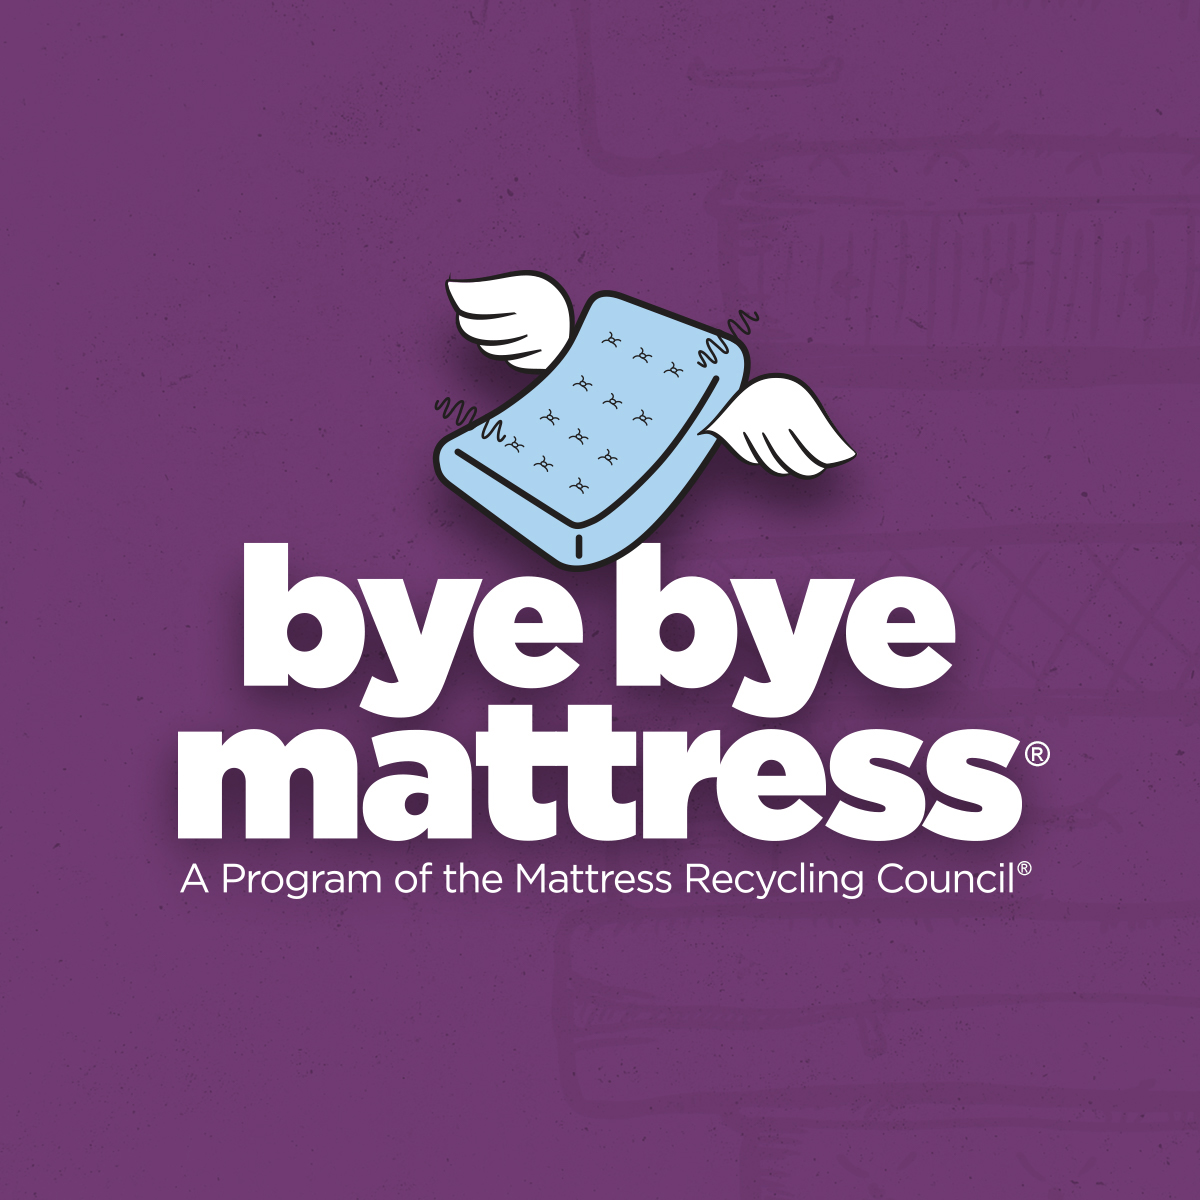 Valley Mattress Outlet - Bye Bye Mattress | A Program of the Mattress Recycling Council